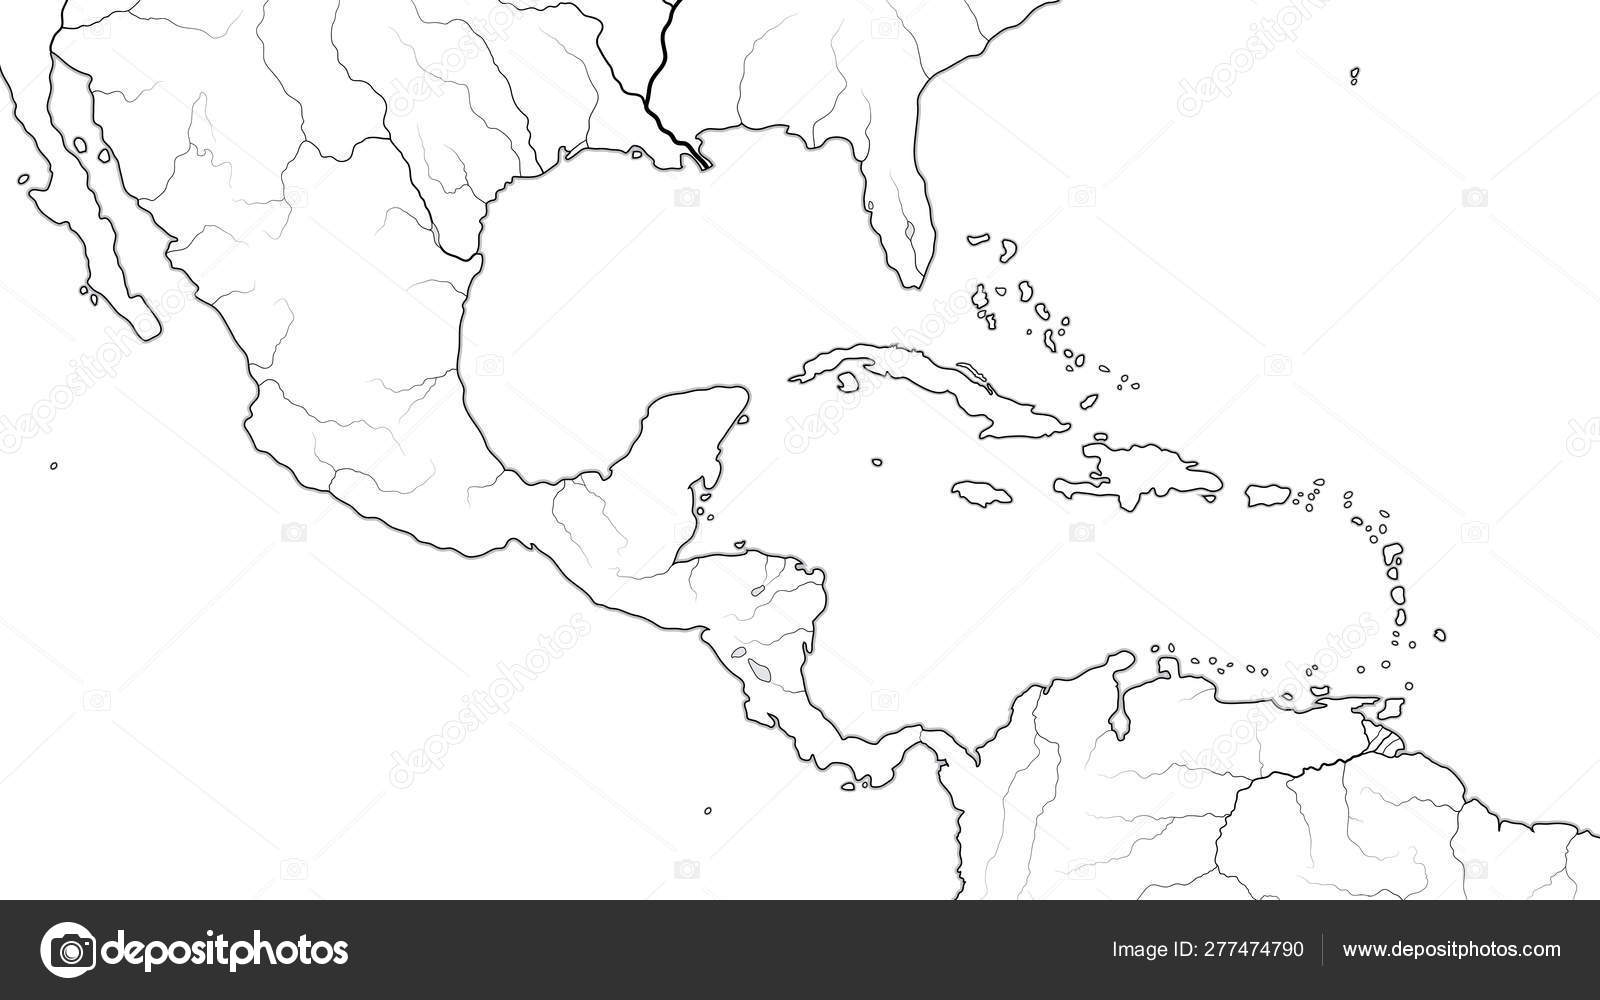 World Map of CENTRAL AMERICA and CARIBBEAN BASIN REGION ...